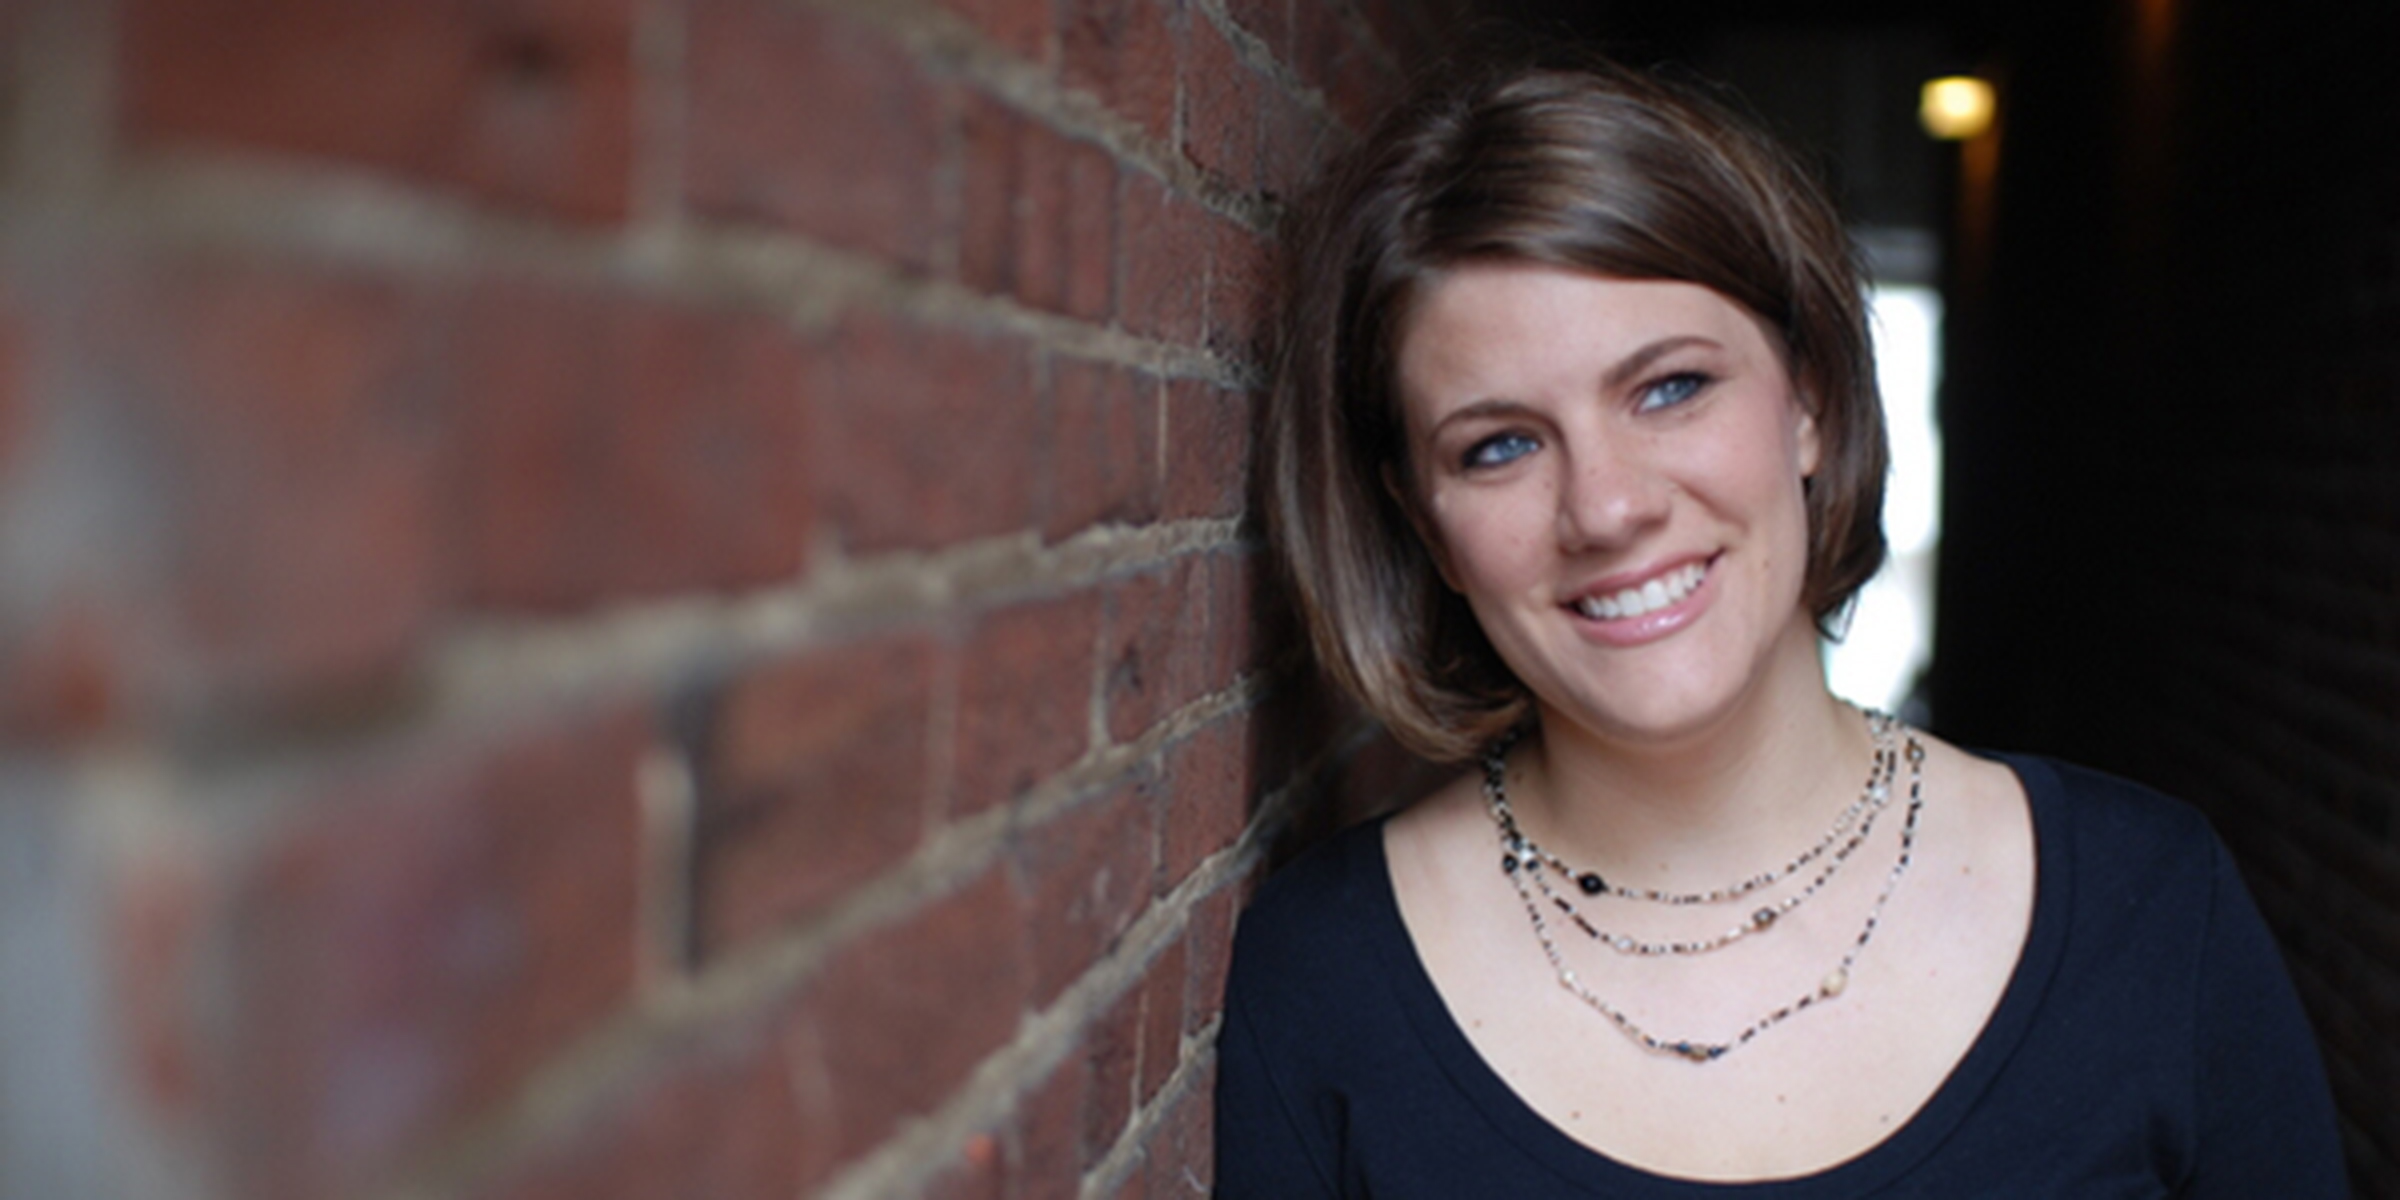 Death of Christian writer Rachel Held Evans left 'gaping raw wound,' husband says